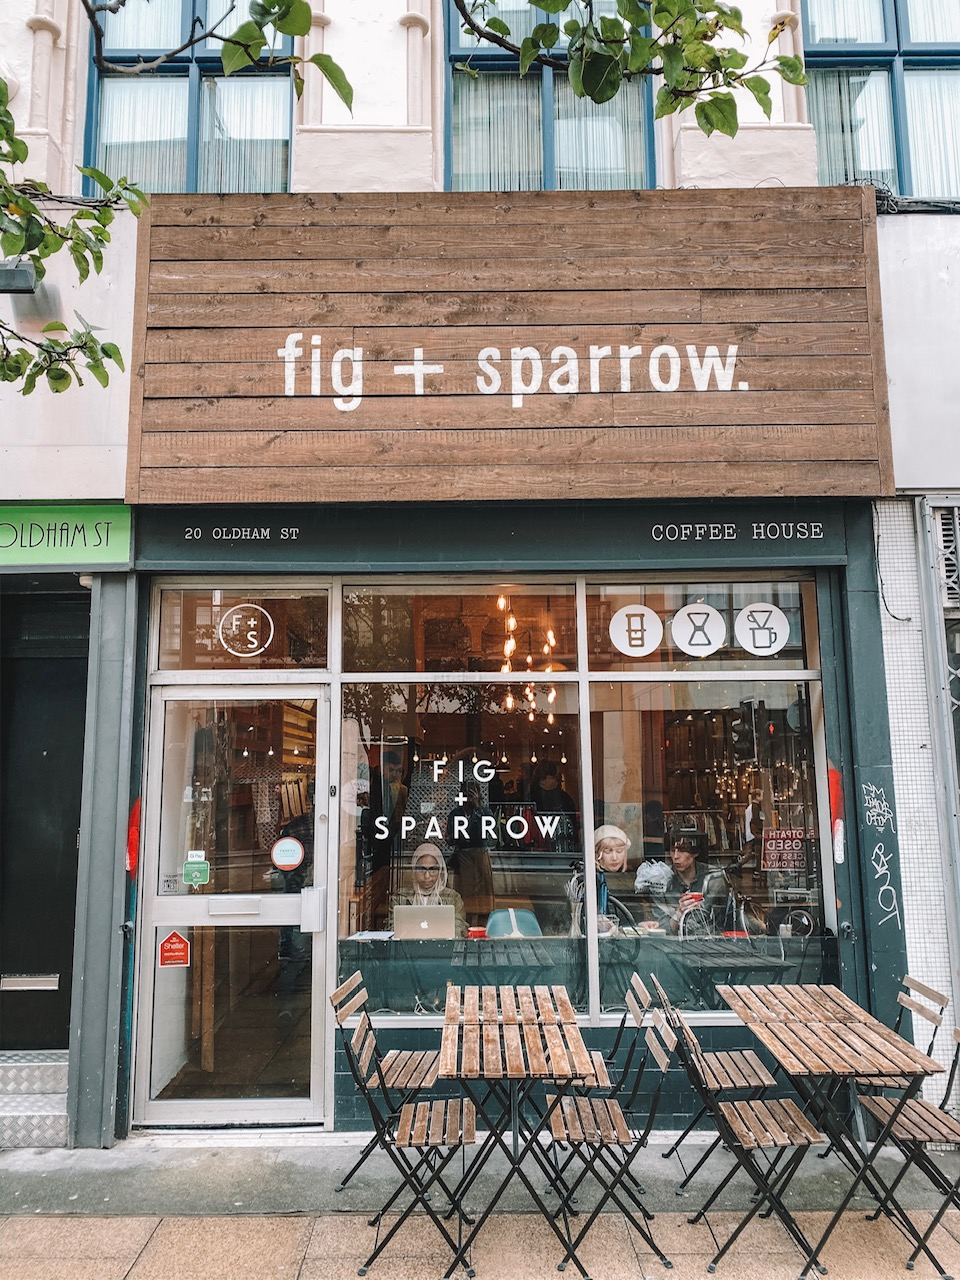 Travel blogger Amanda Martin shares where to eat in Manchester, UK. Fig and Sparrow has the best scones and clotted cream!